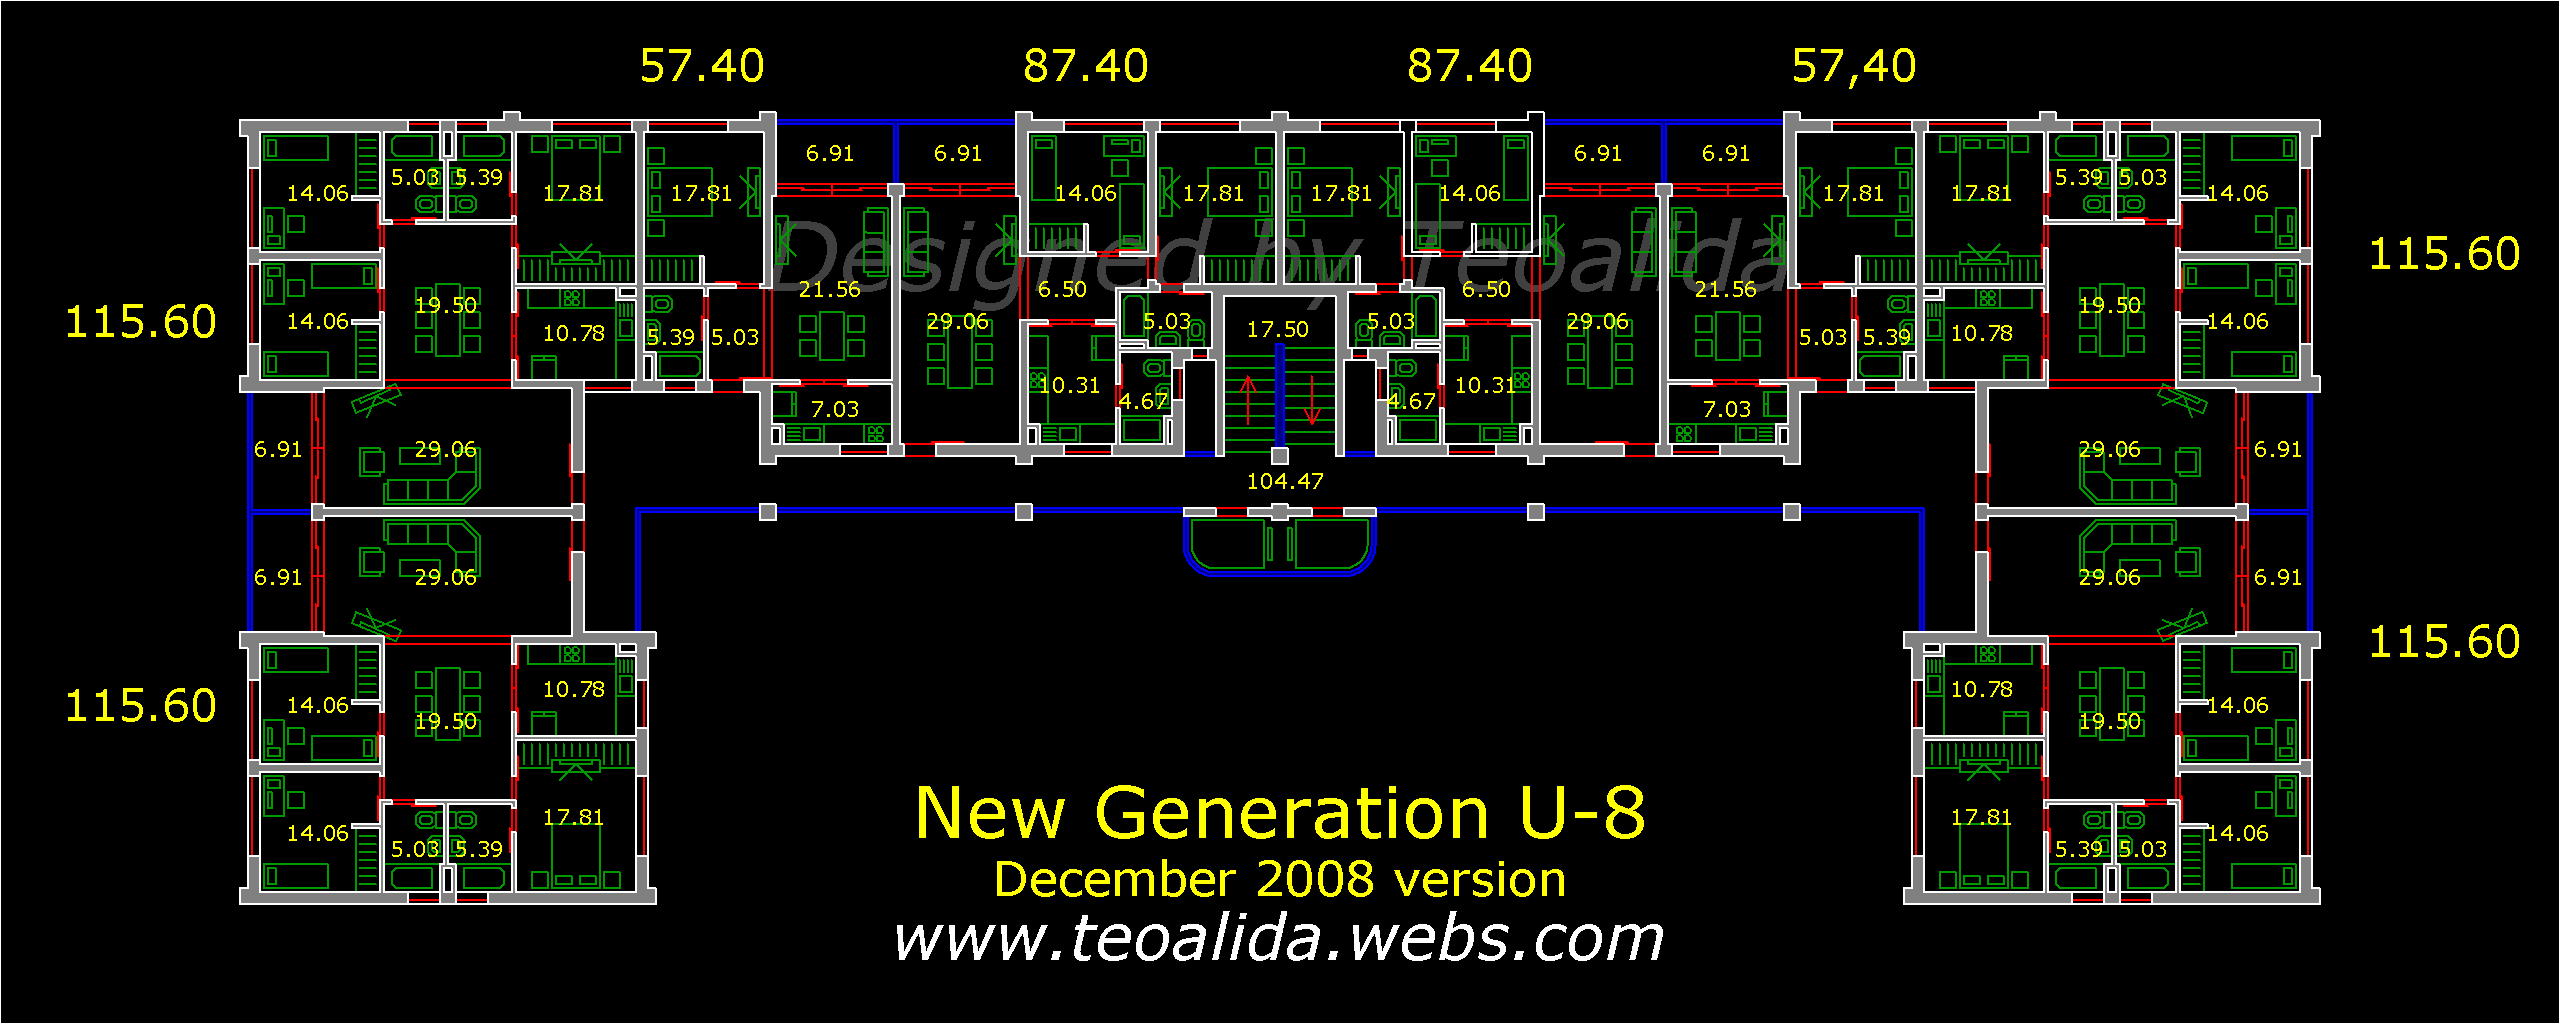 New Generation U-8 floor plan